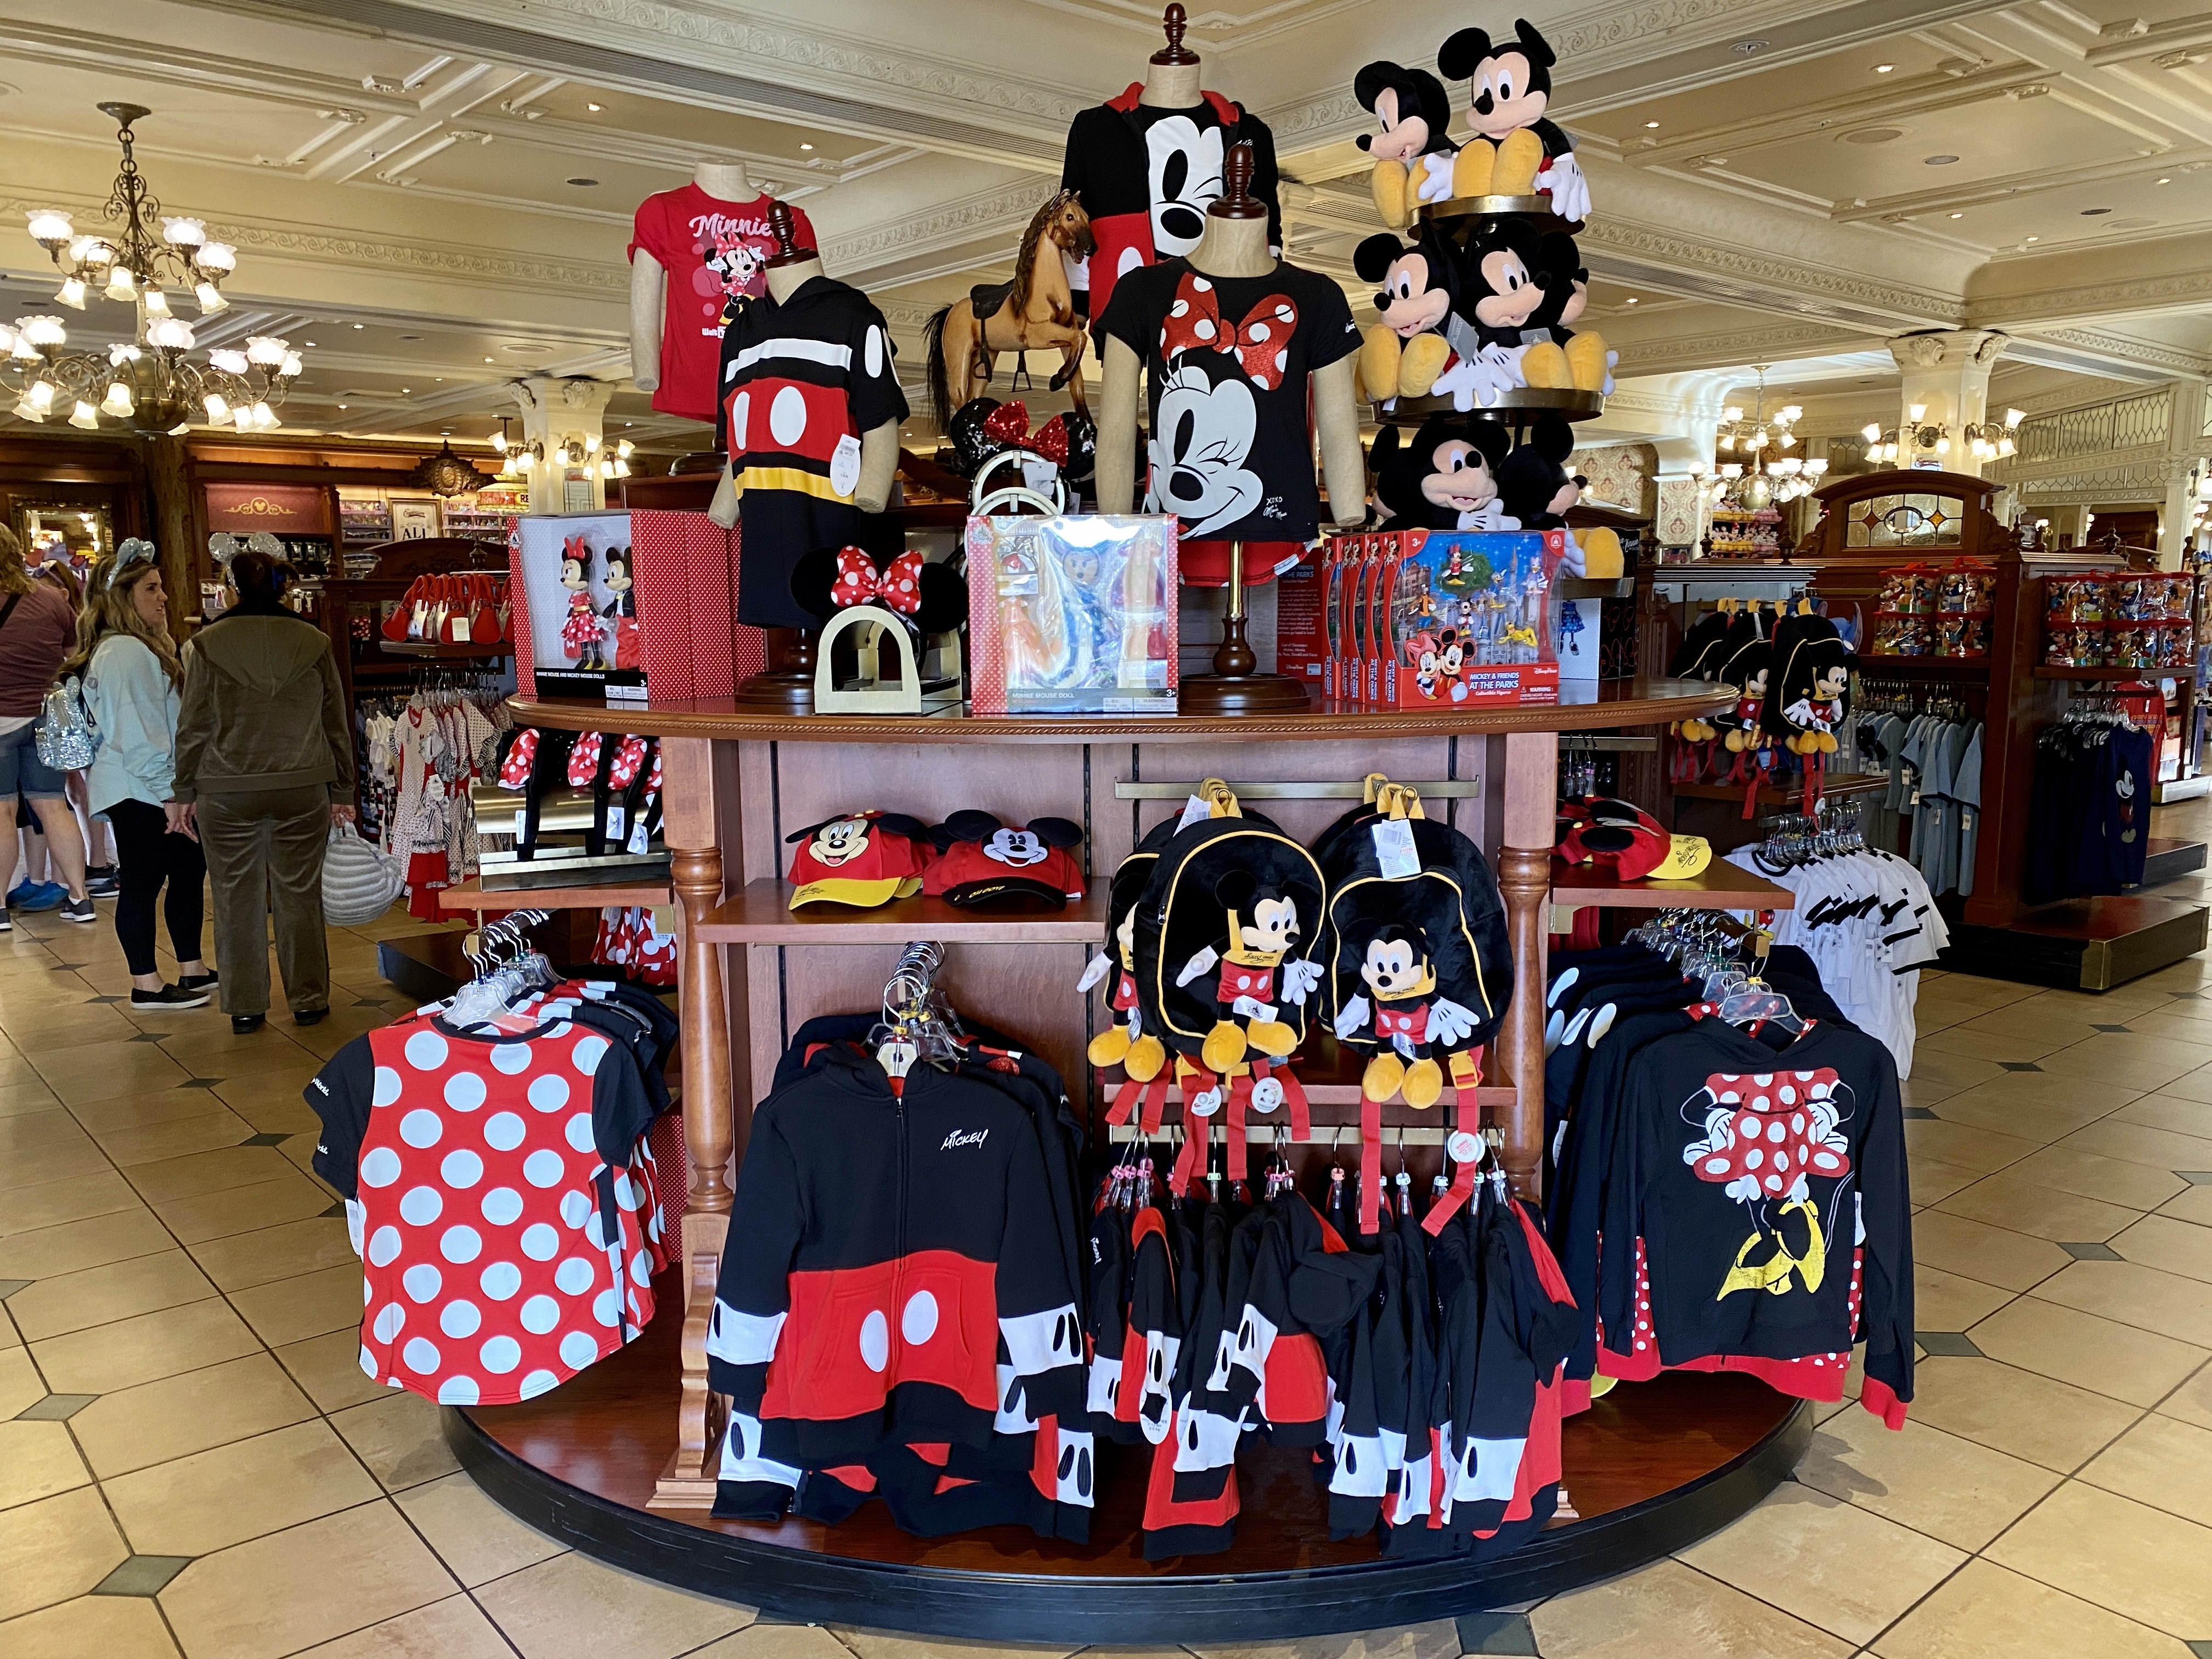 Mickey Mouse Merch display